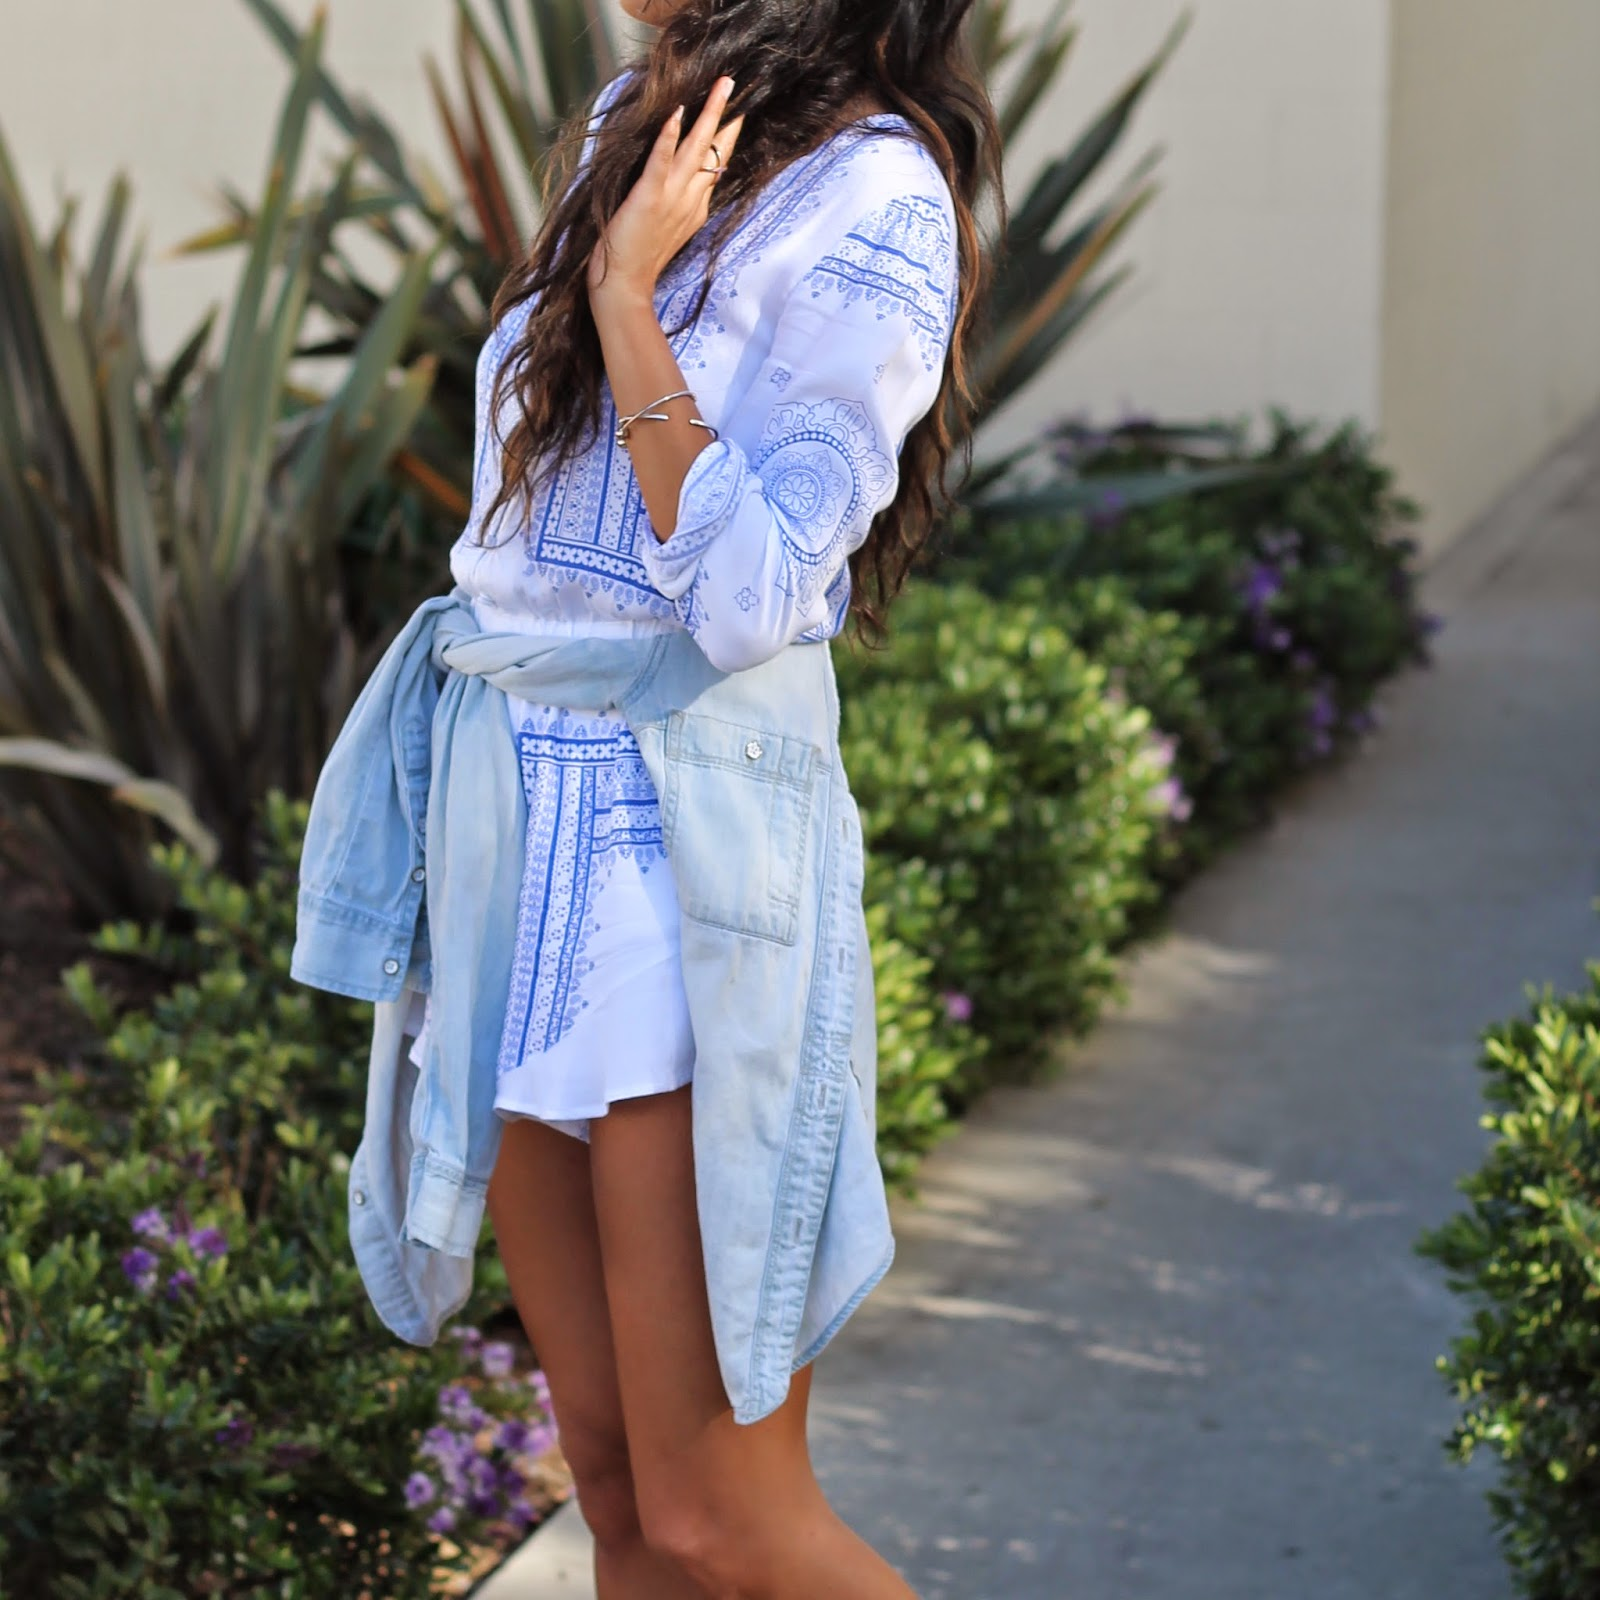 jetset diaries romper, how to style romper, romper for spring, warm weather outfit, los angeles style